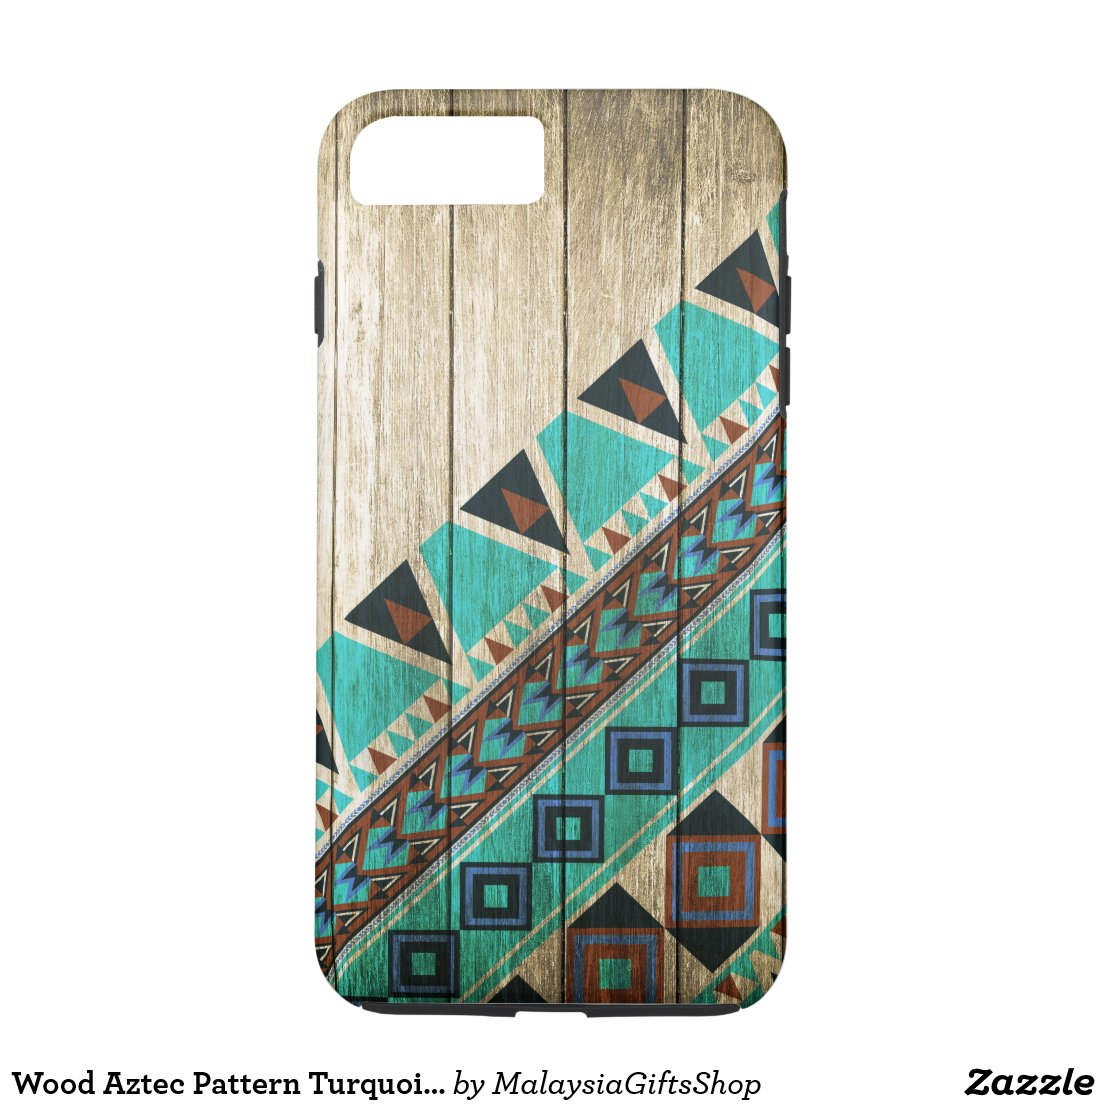 Wood Aztec Pattern Turquoise iPhone 7 Plus Case